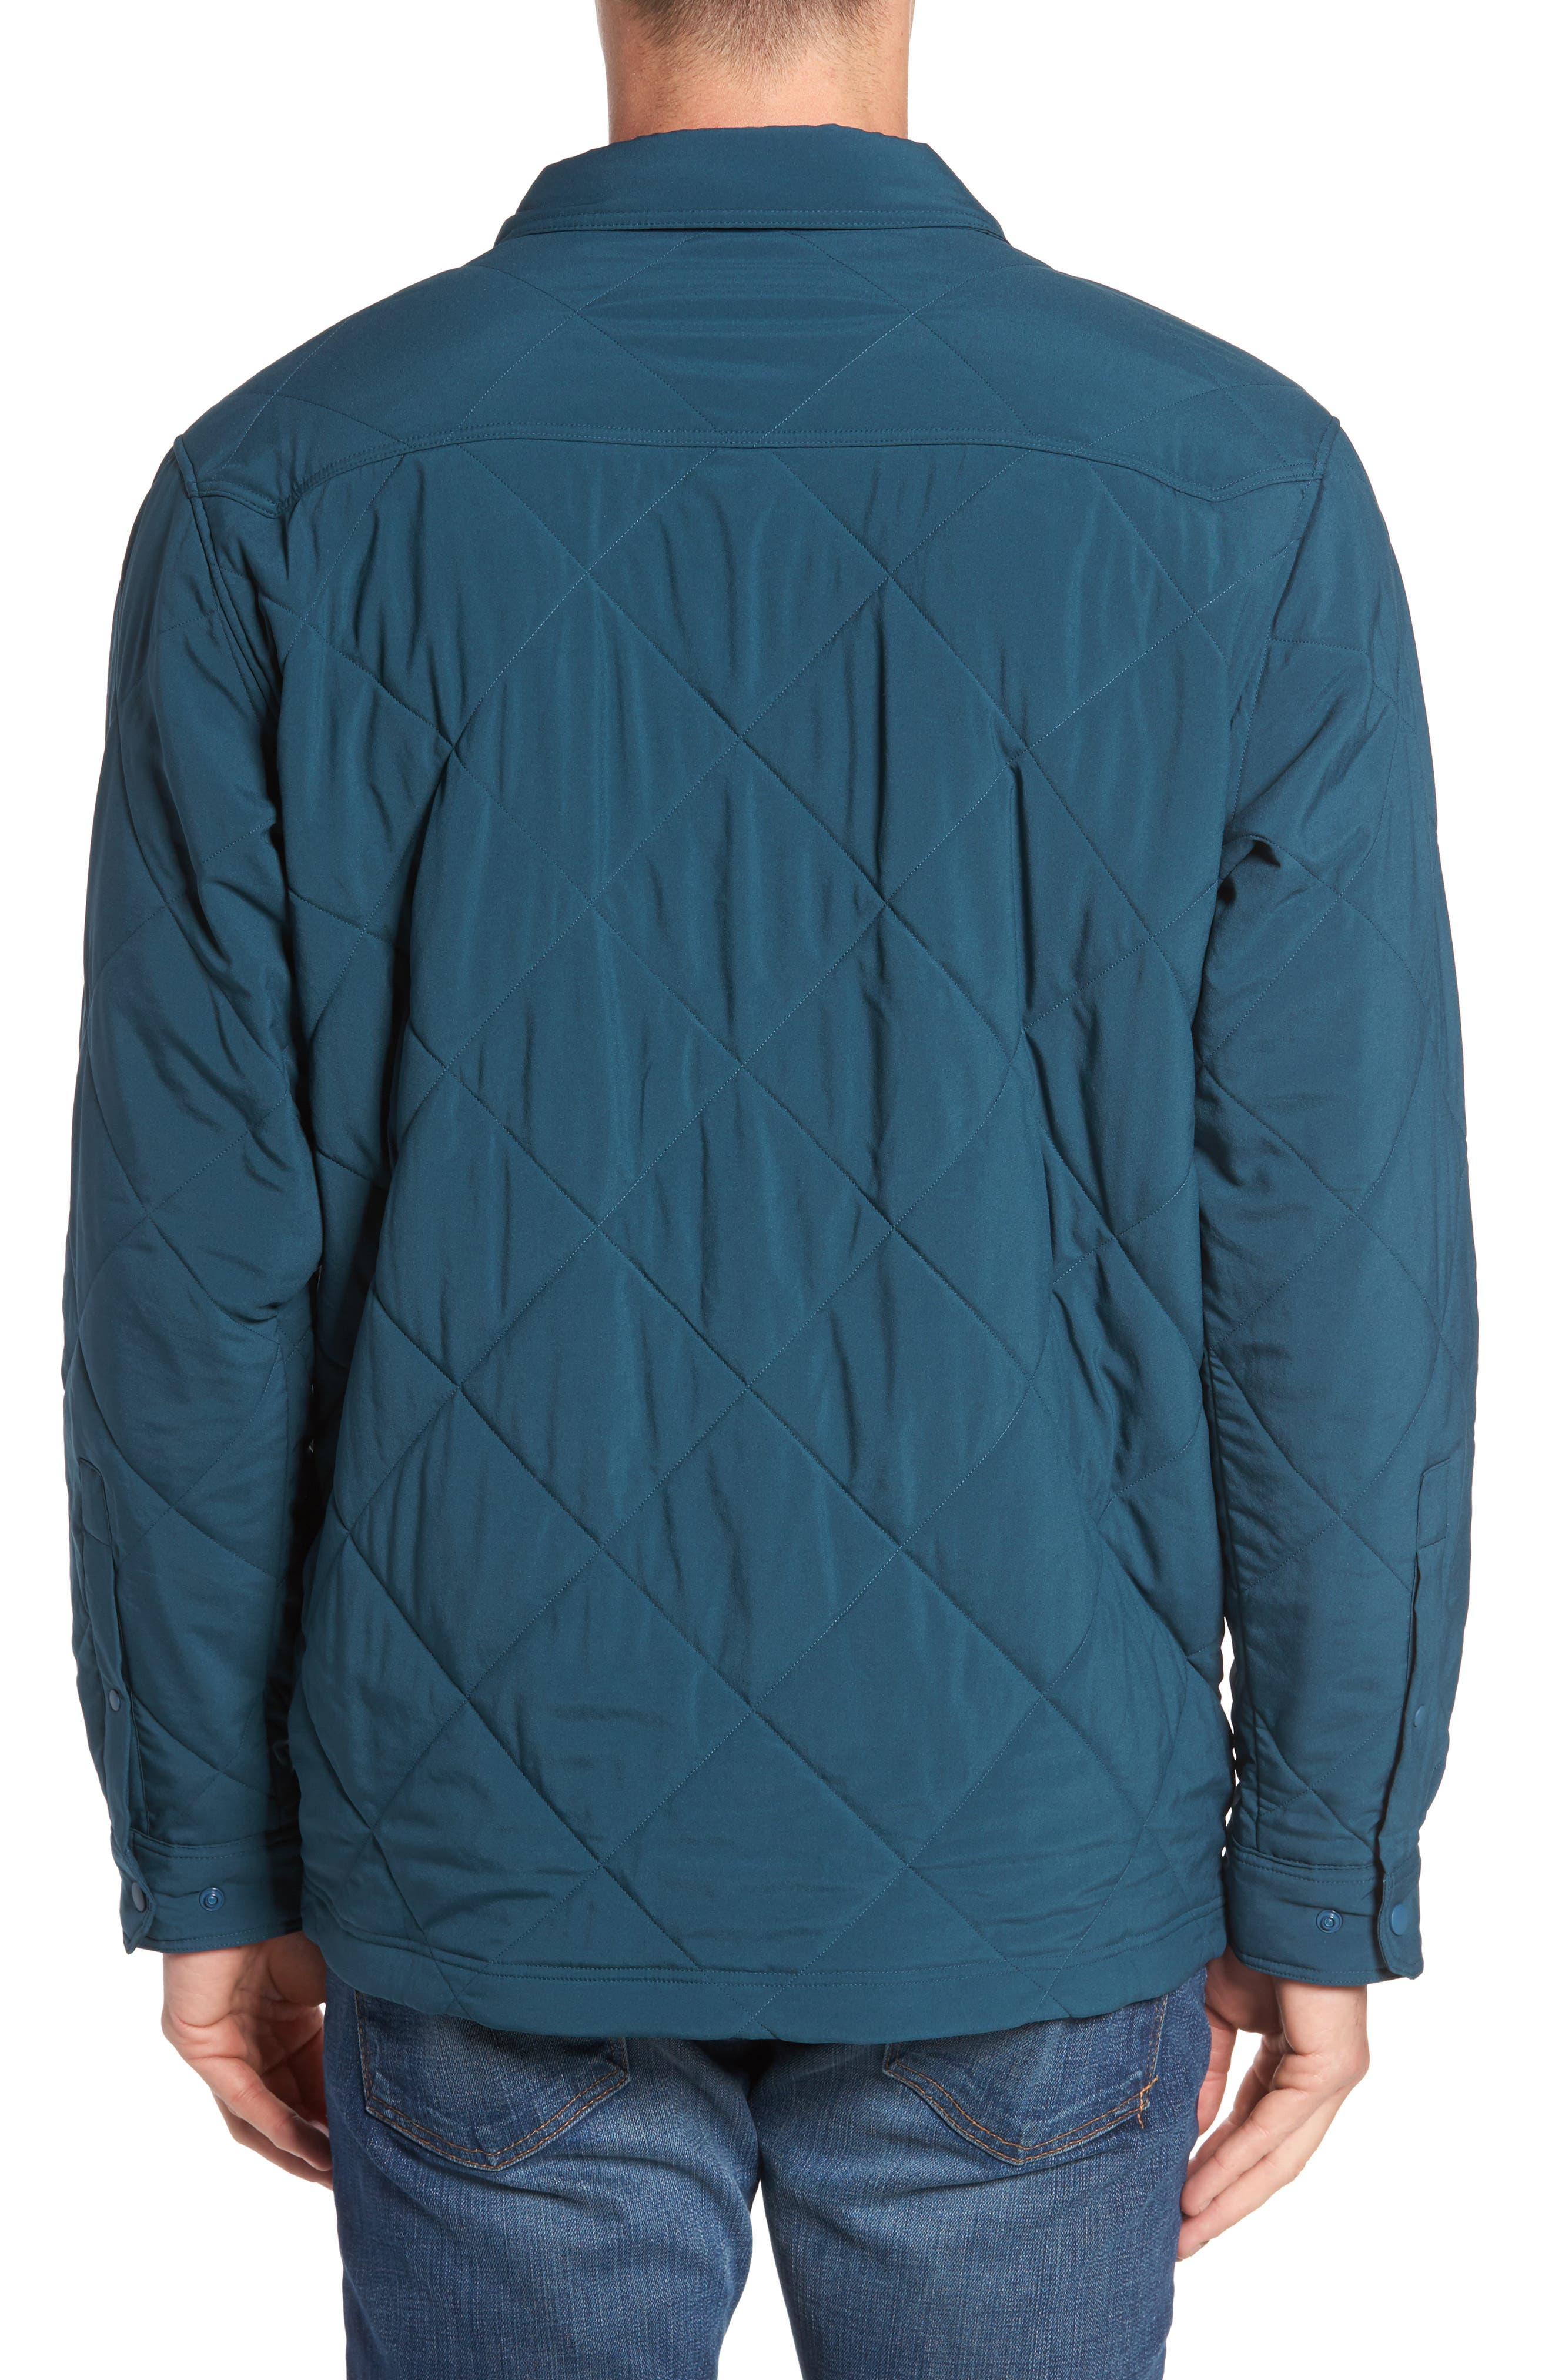 Alternate Image 2  - Patagonia Tough Puff Shirt Jacket